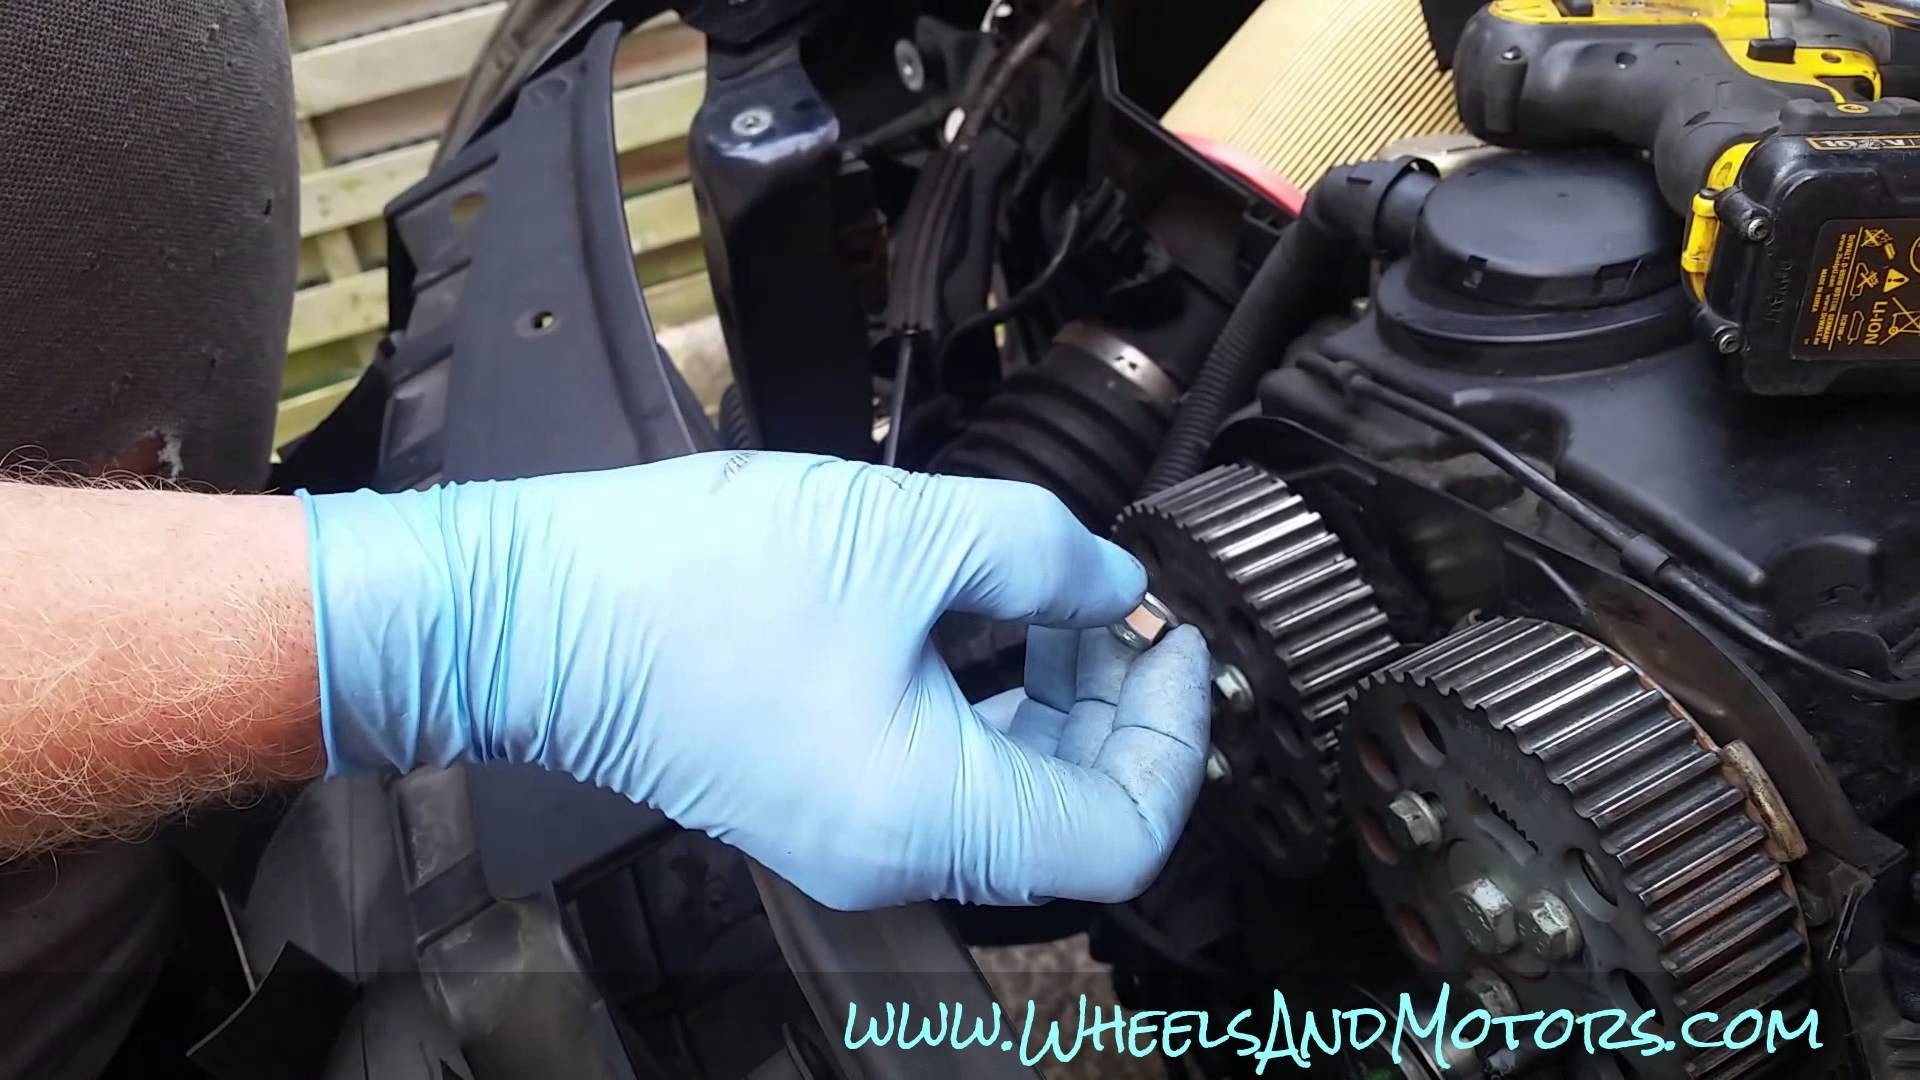 2007 Audi A4 Engine Diagram How to Replace Timing Belt Cambelt and Water Pump On 2 0 Tdi Of 2007 Audi A4 Engine Diagram 1996 Audi A4 Engine Diagram Diy Enthusiasts Wiring Diagrams •